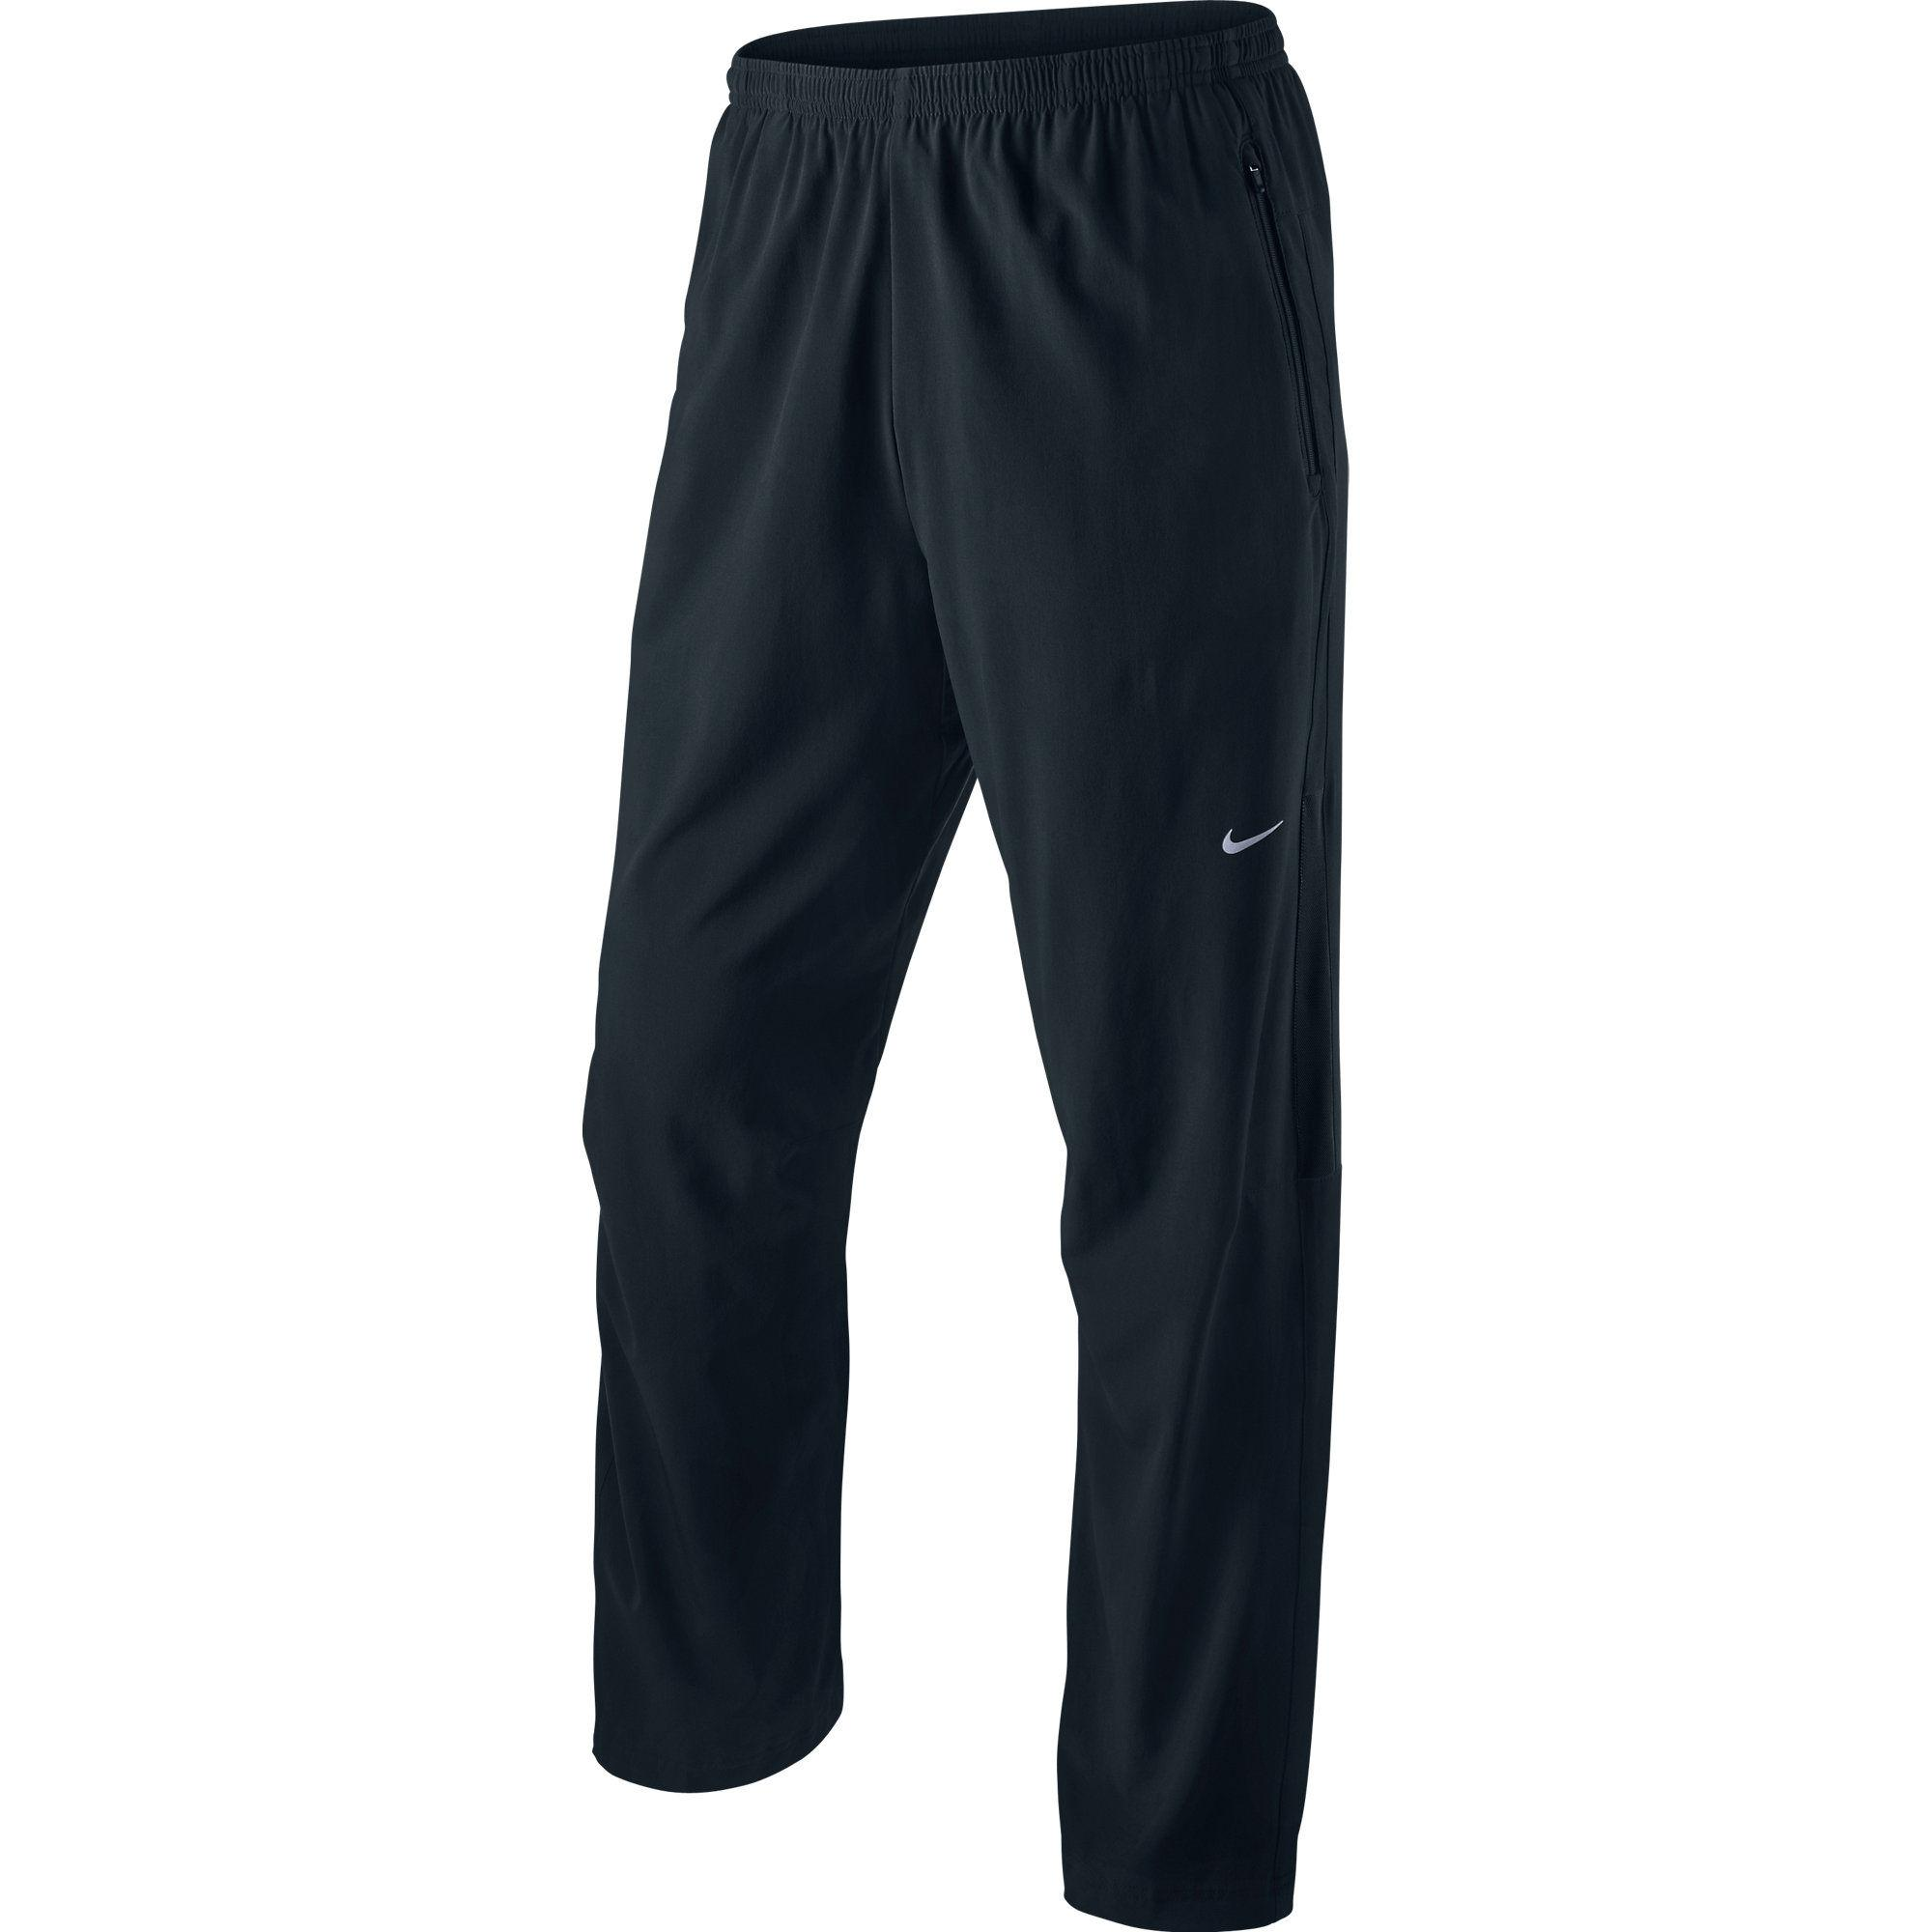 Foto Pantalón Nike - Stretch Woven - OI12 - Extra Large Black/Green/Silver